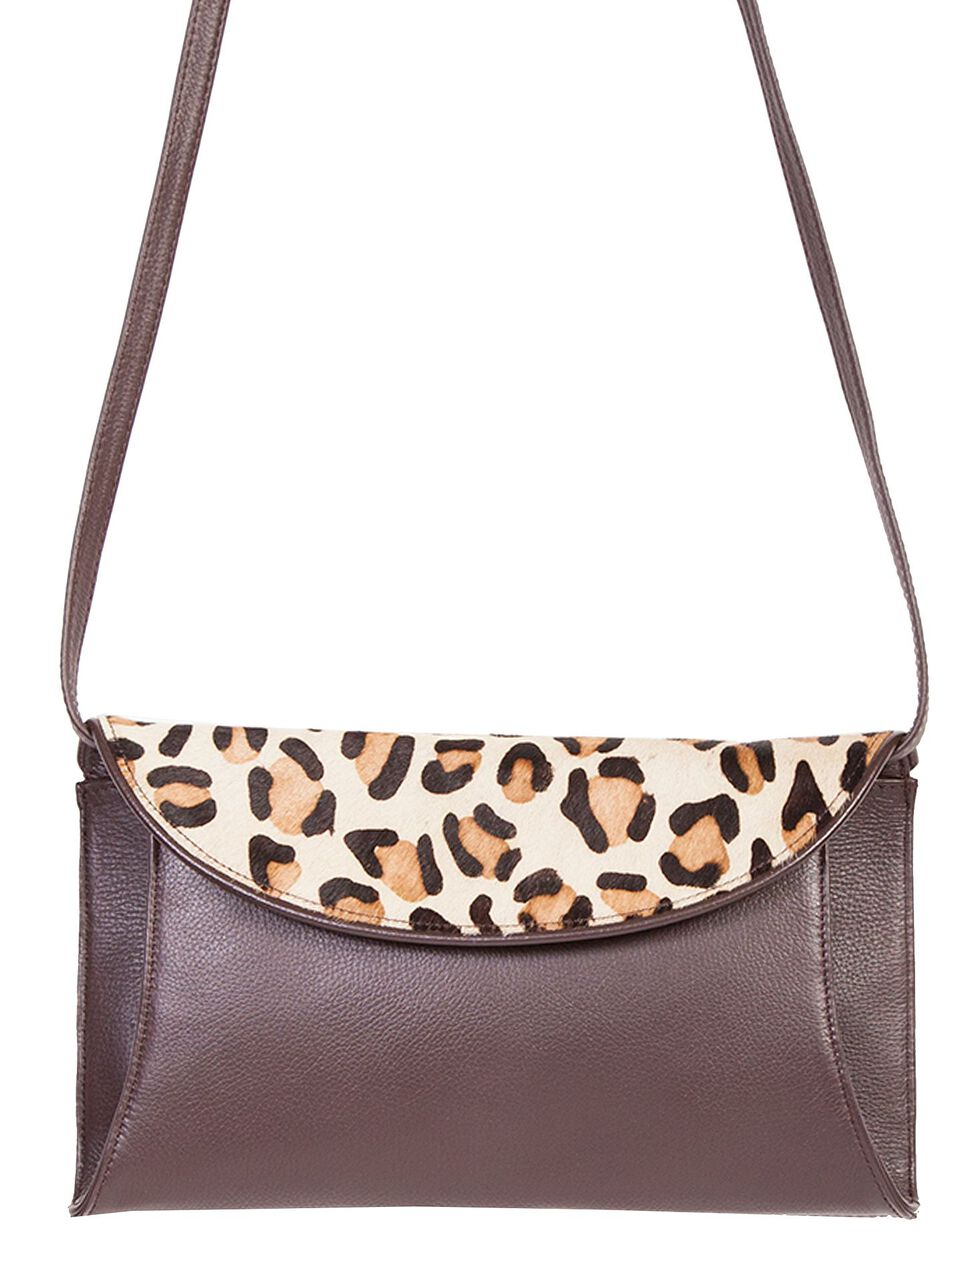 Scully Pebble Leather Shoulder Bag, Brown, hi-res